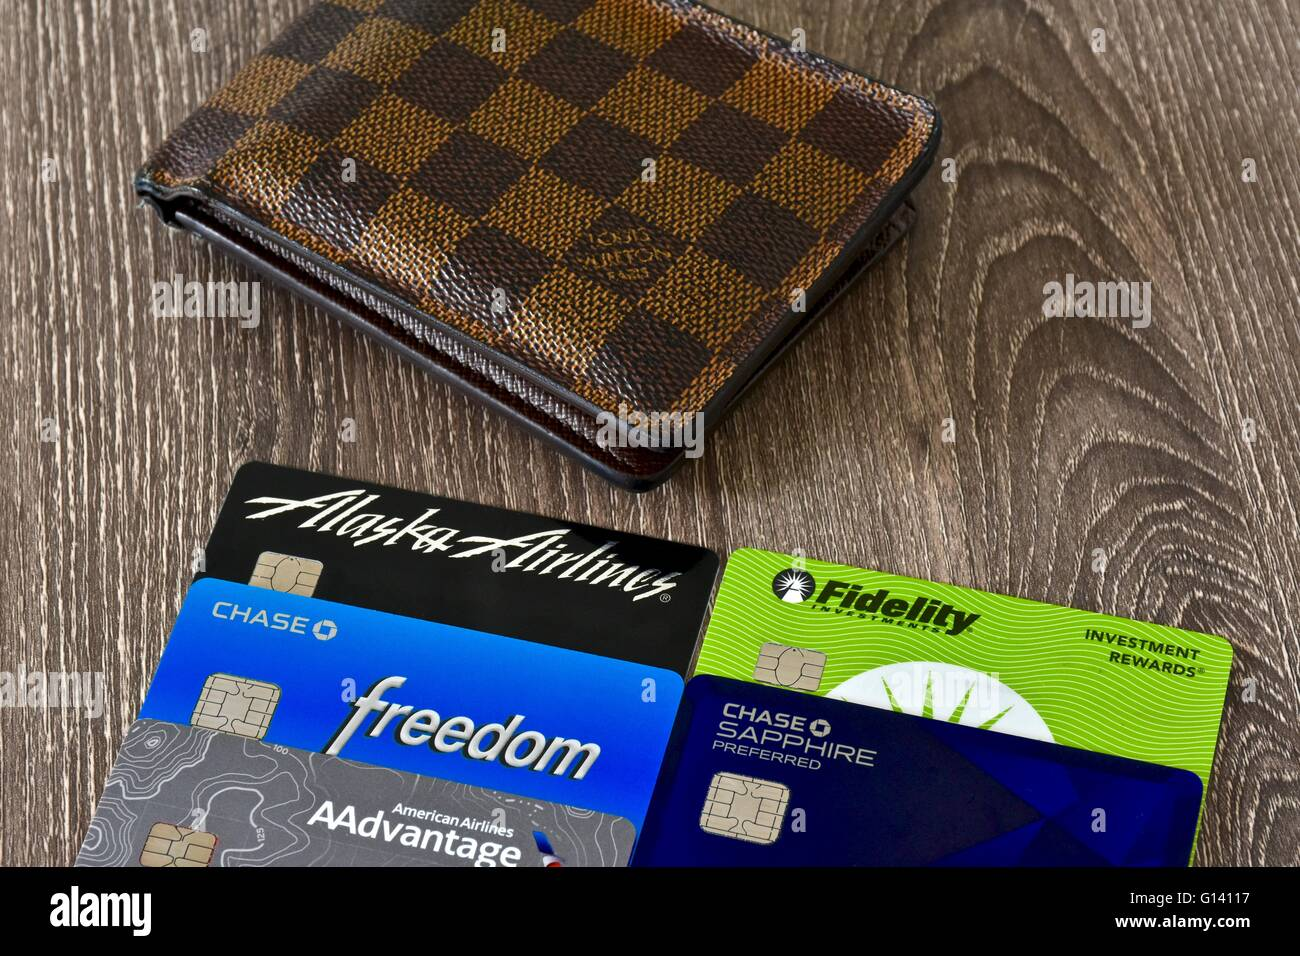 Chase Credit Cards Stock Photos & Chase Credit Cards Stock